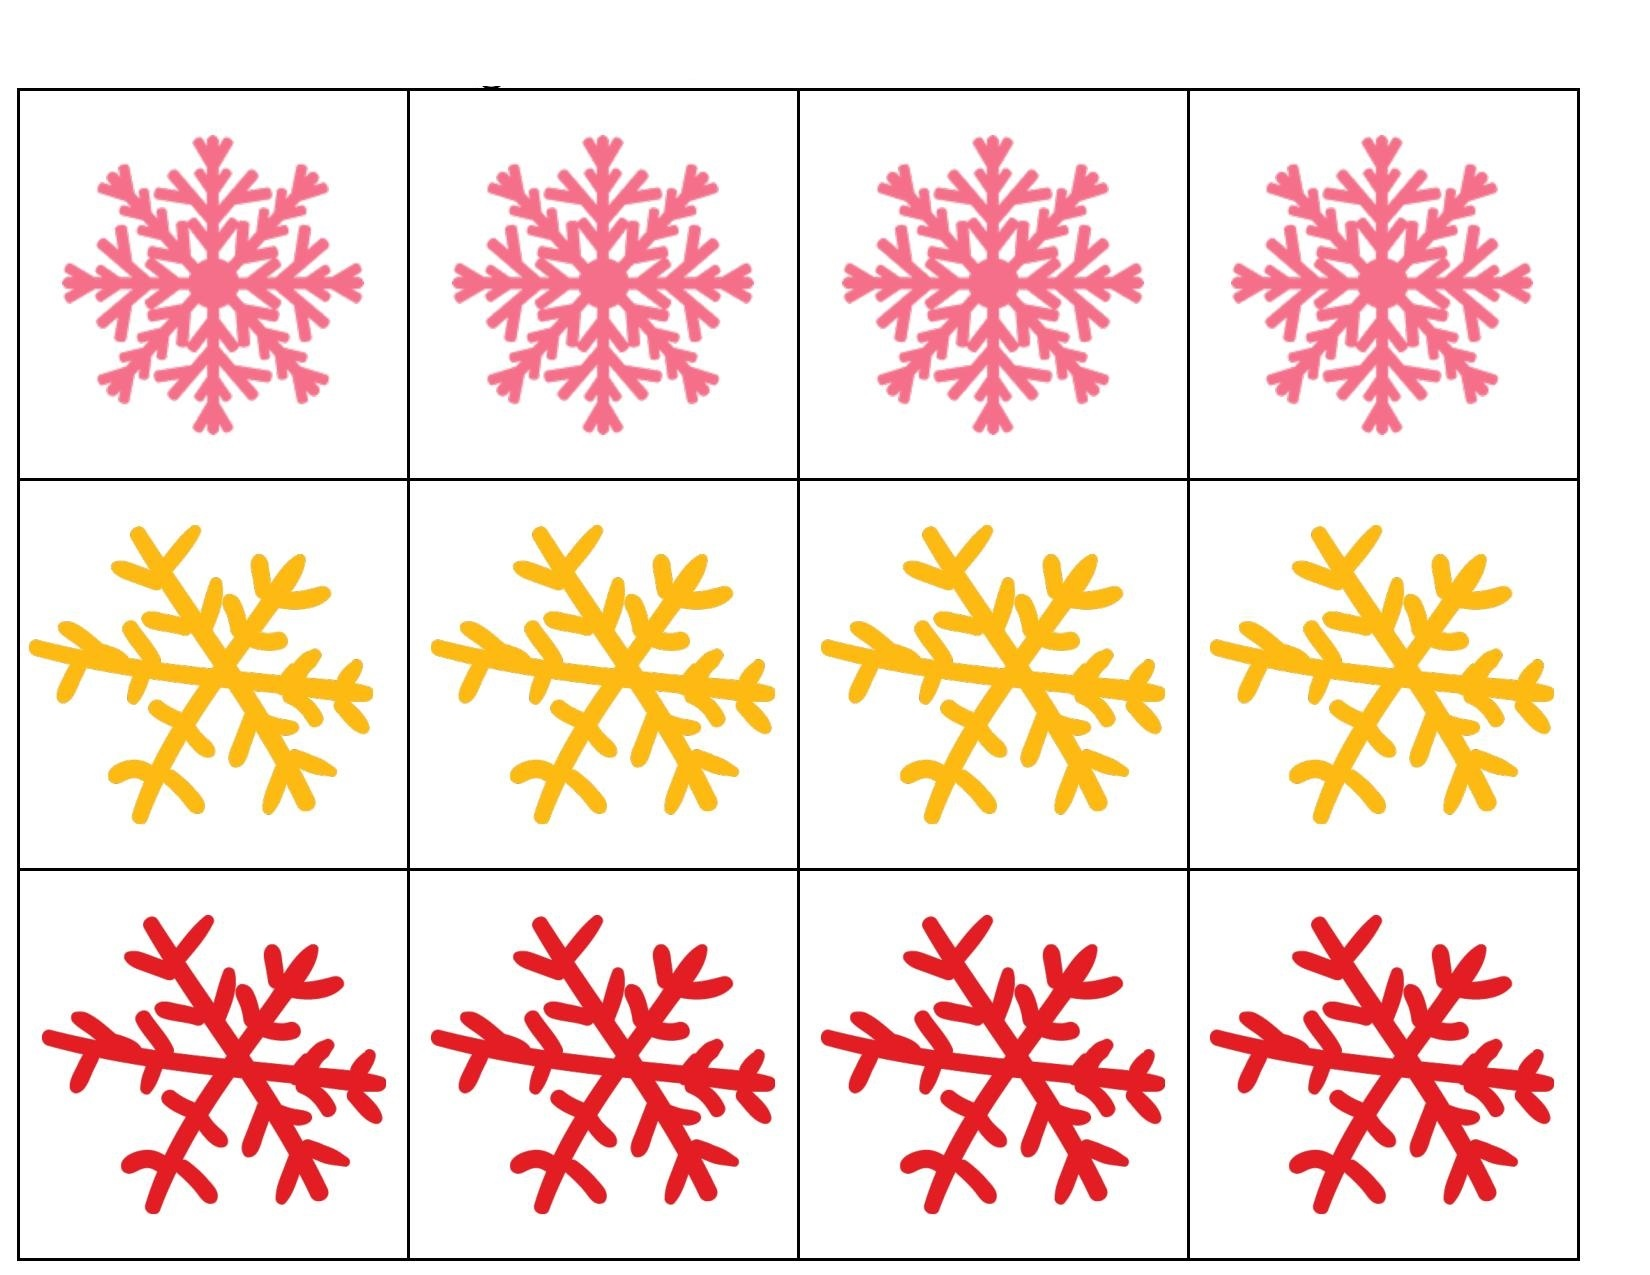 Snowflake Pattern Activities Preschool And Homeschool